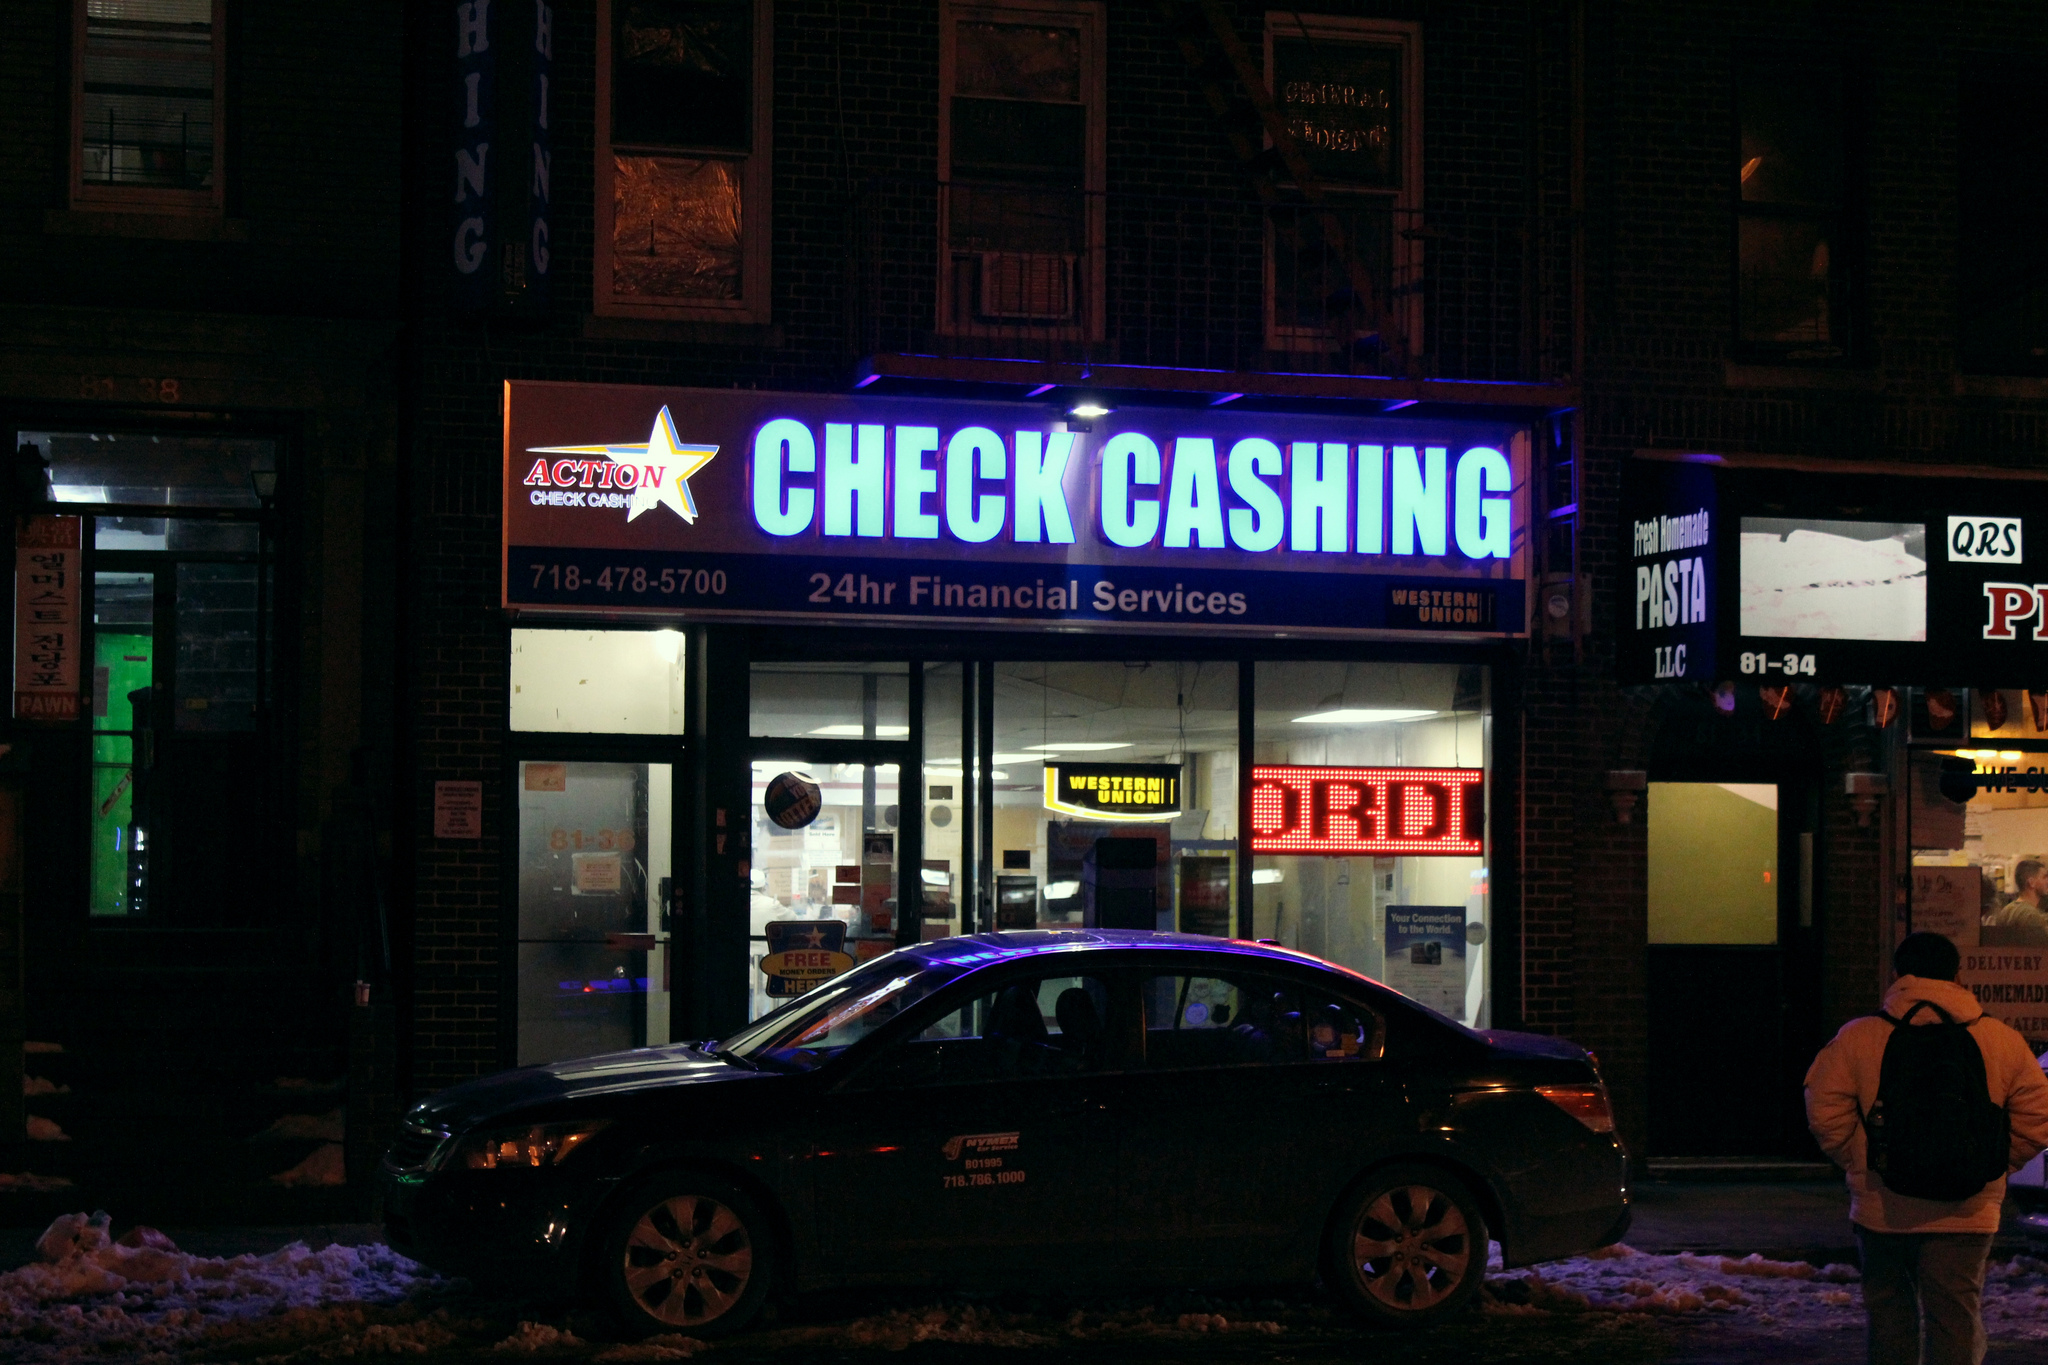 As a result of a strong distrust of banks and challenges like lack of in-language services, immigrants are continuing to use alternative financial services, like this check cashing business in Elmhurst. (Photo by Alex Wen)